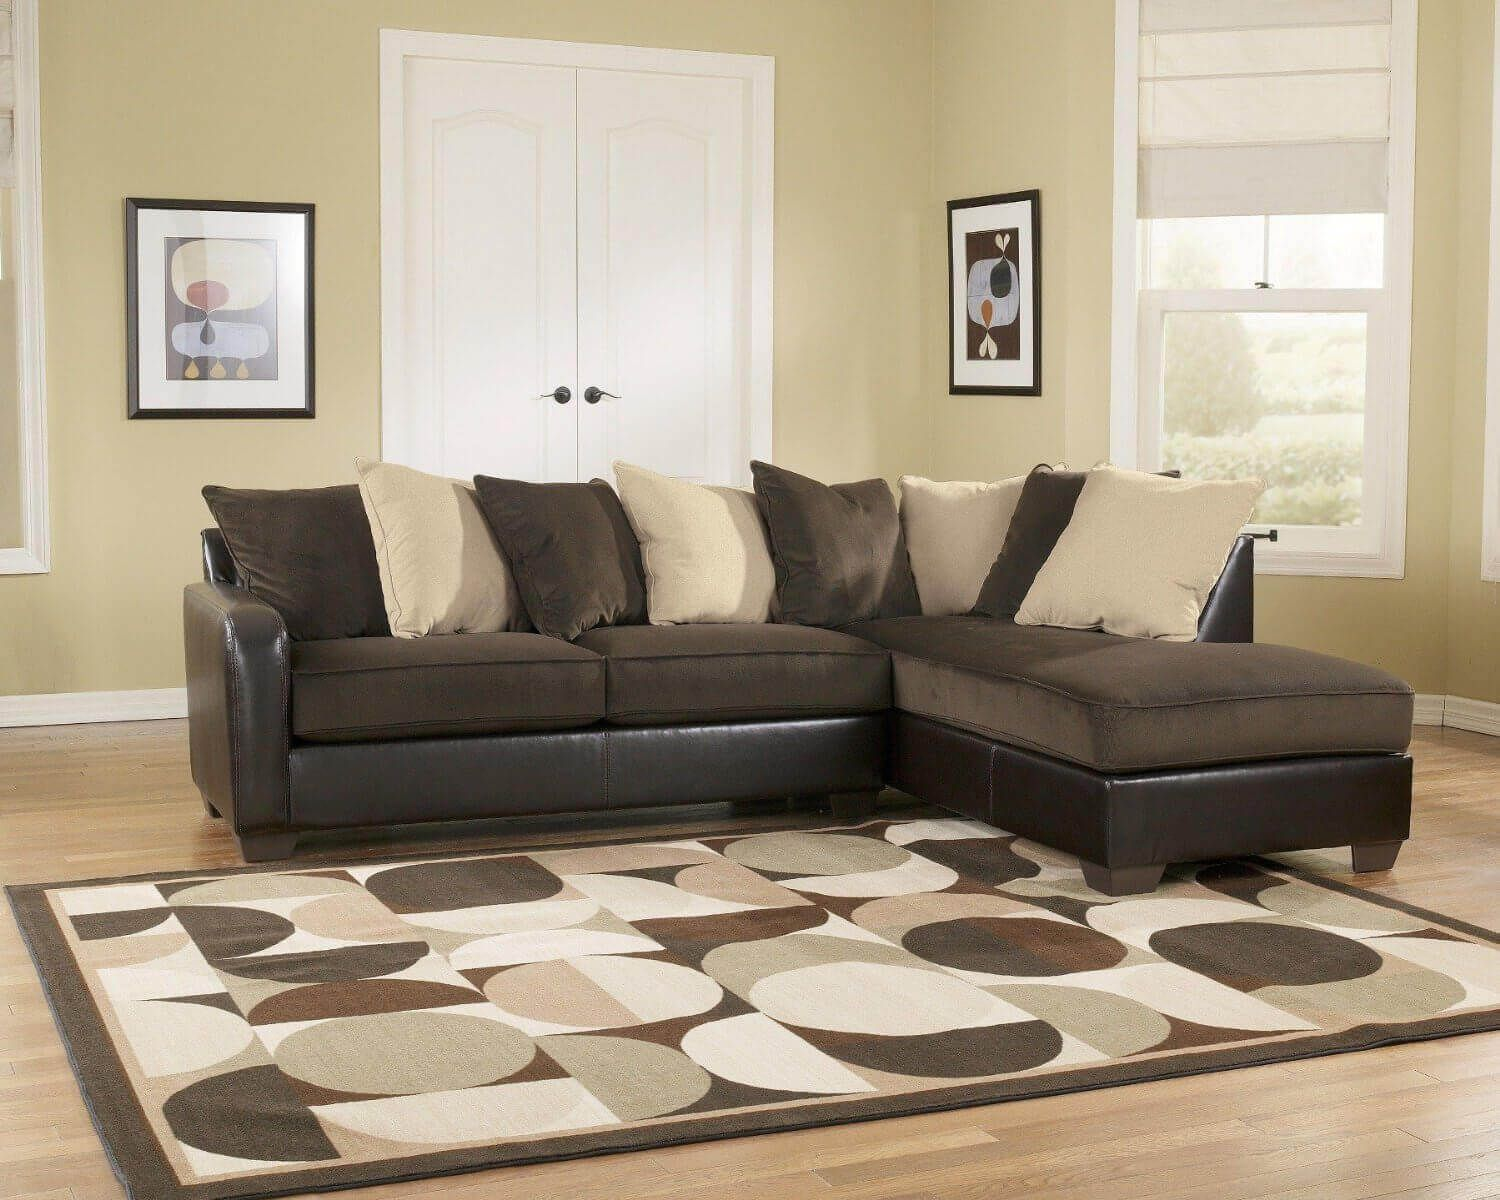 Cream Colored Sectional Sofa Best Collections Of Sofas And